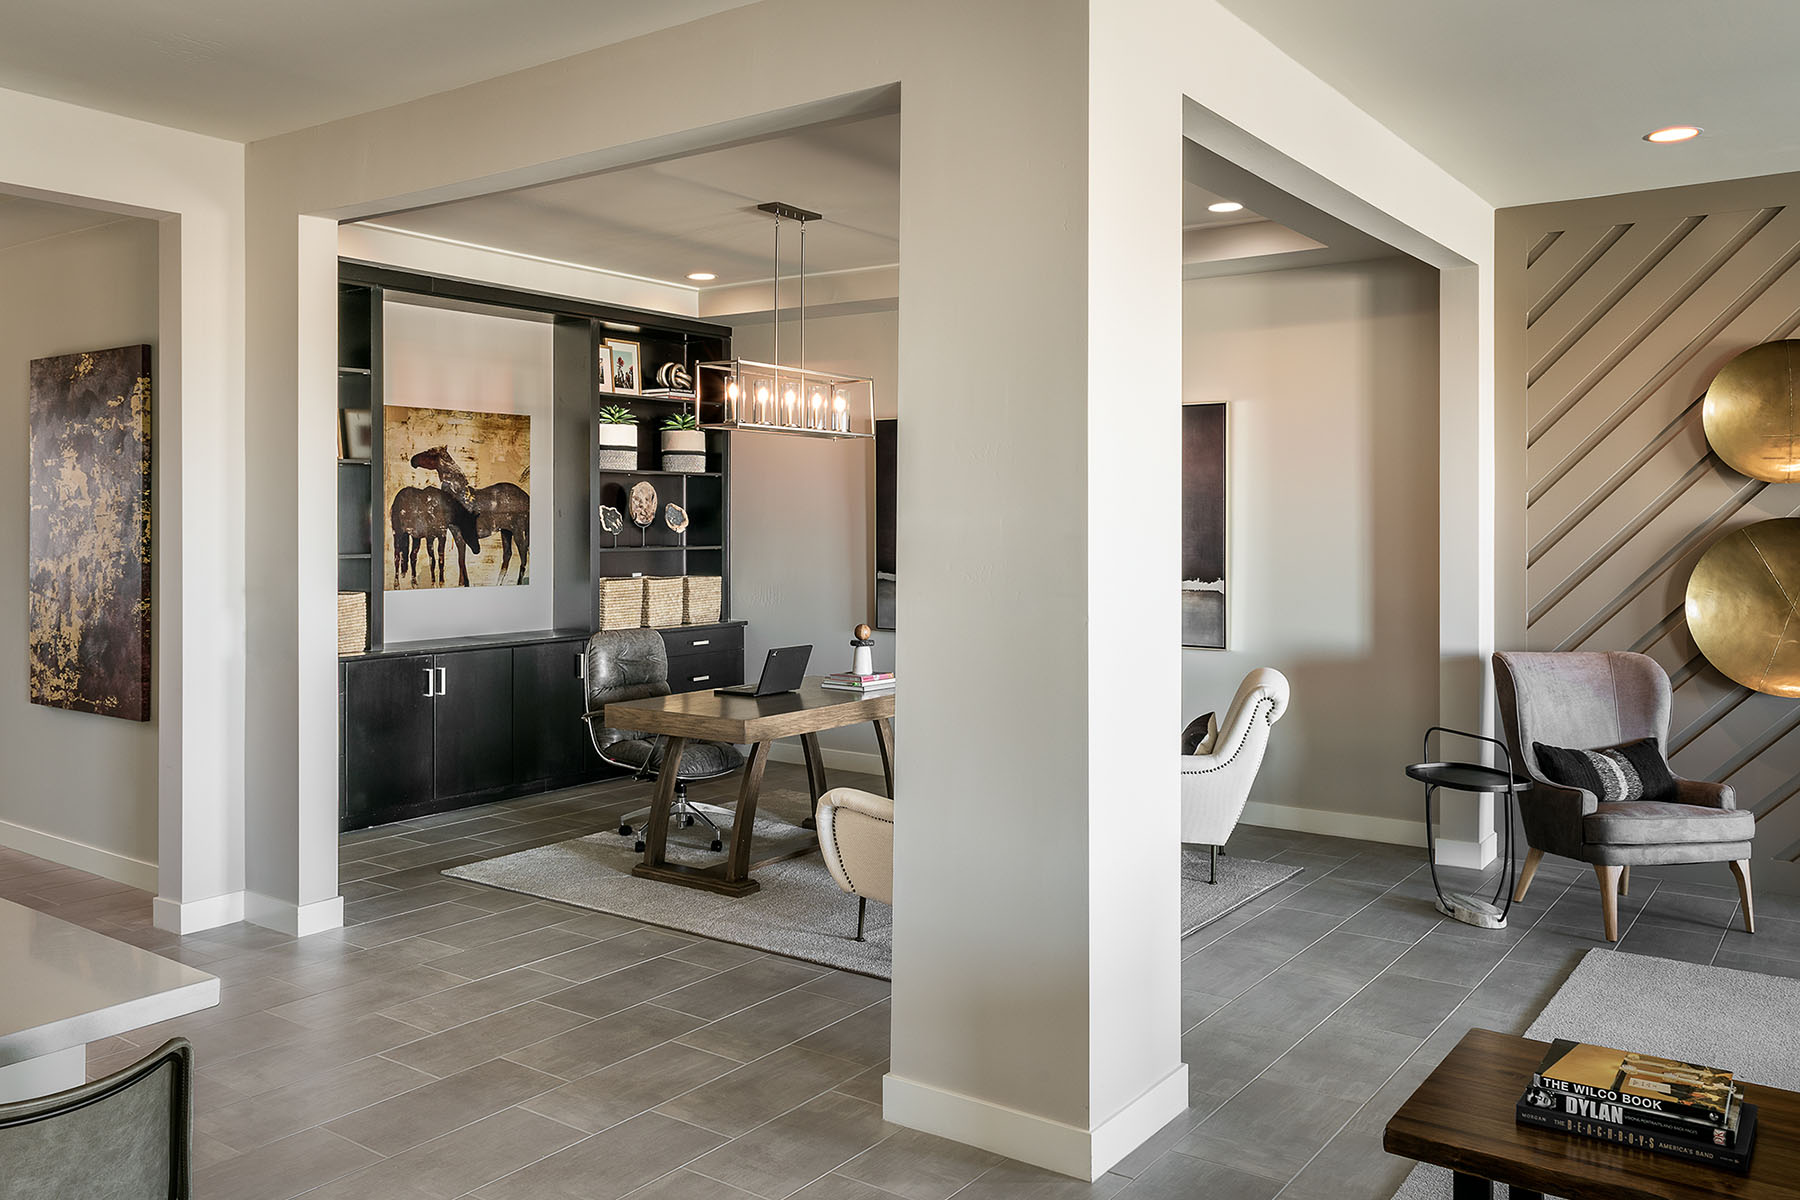 Brookstone Plan Study Room at Azure Canyon in Litchfield Park Arizona by Mattamy Homes